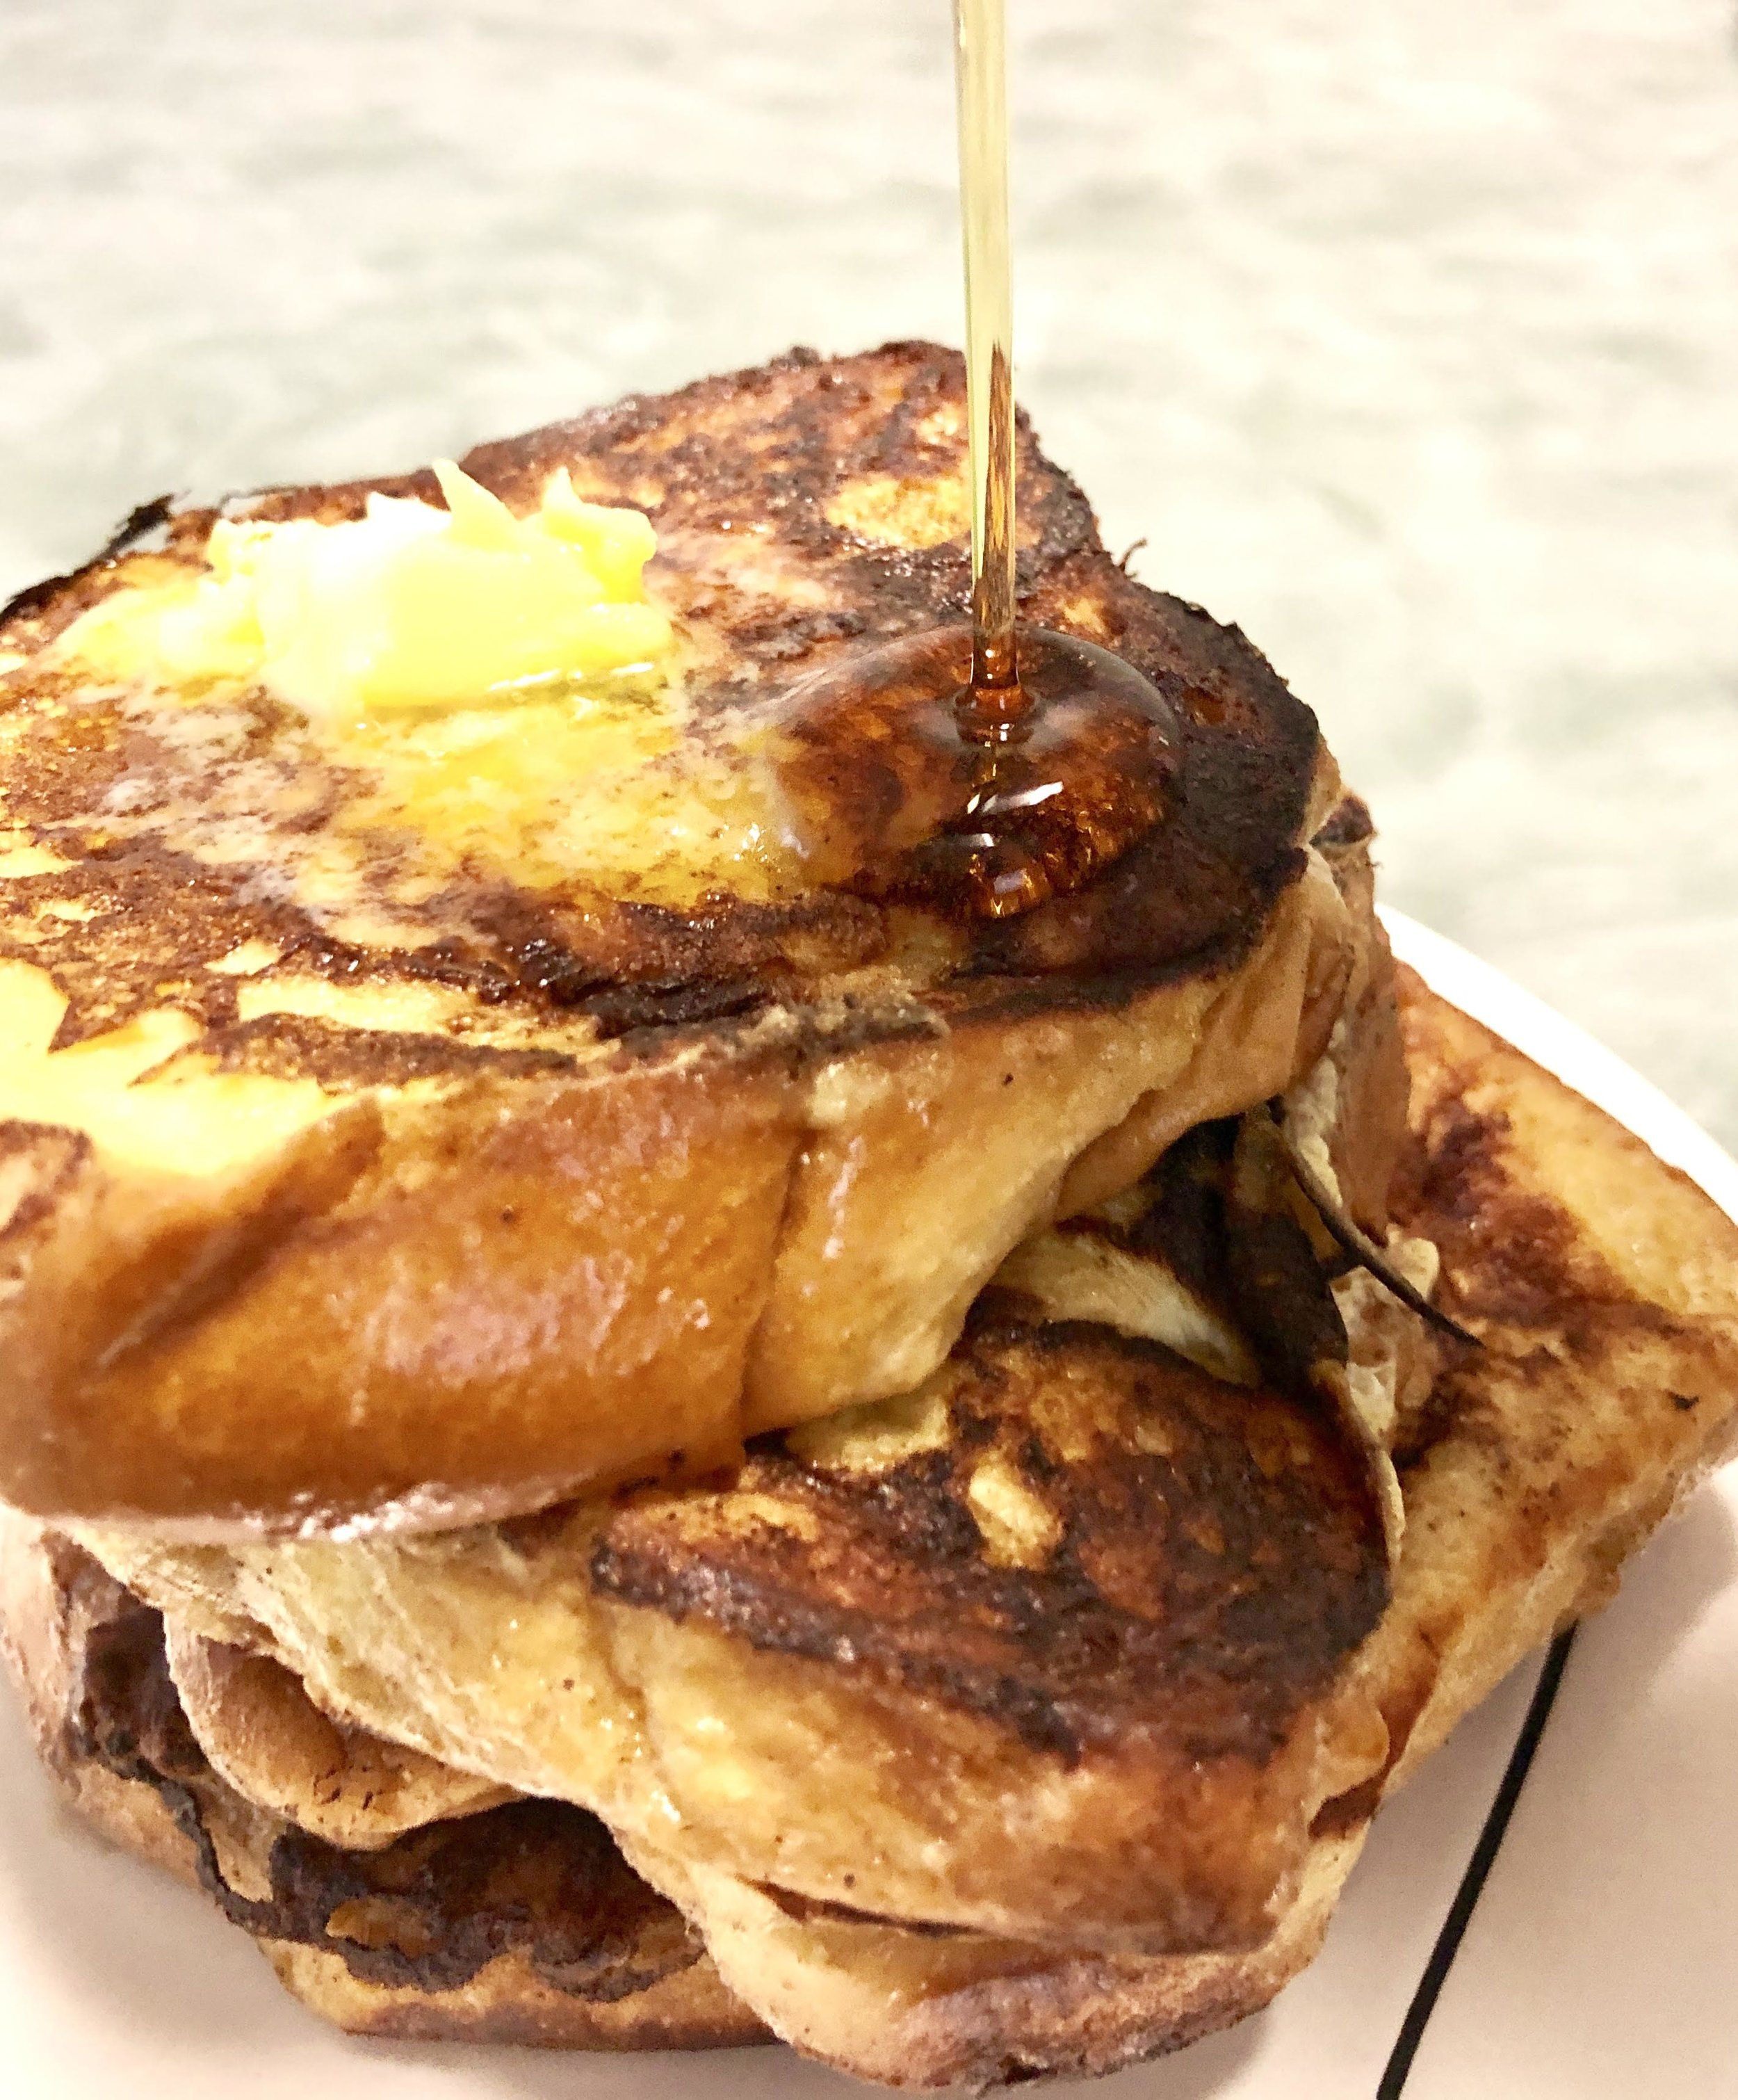 Steal Your Heart French Toast - From your mouth straight to your heart, this French Toast will make you all warm and fuzzy